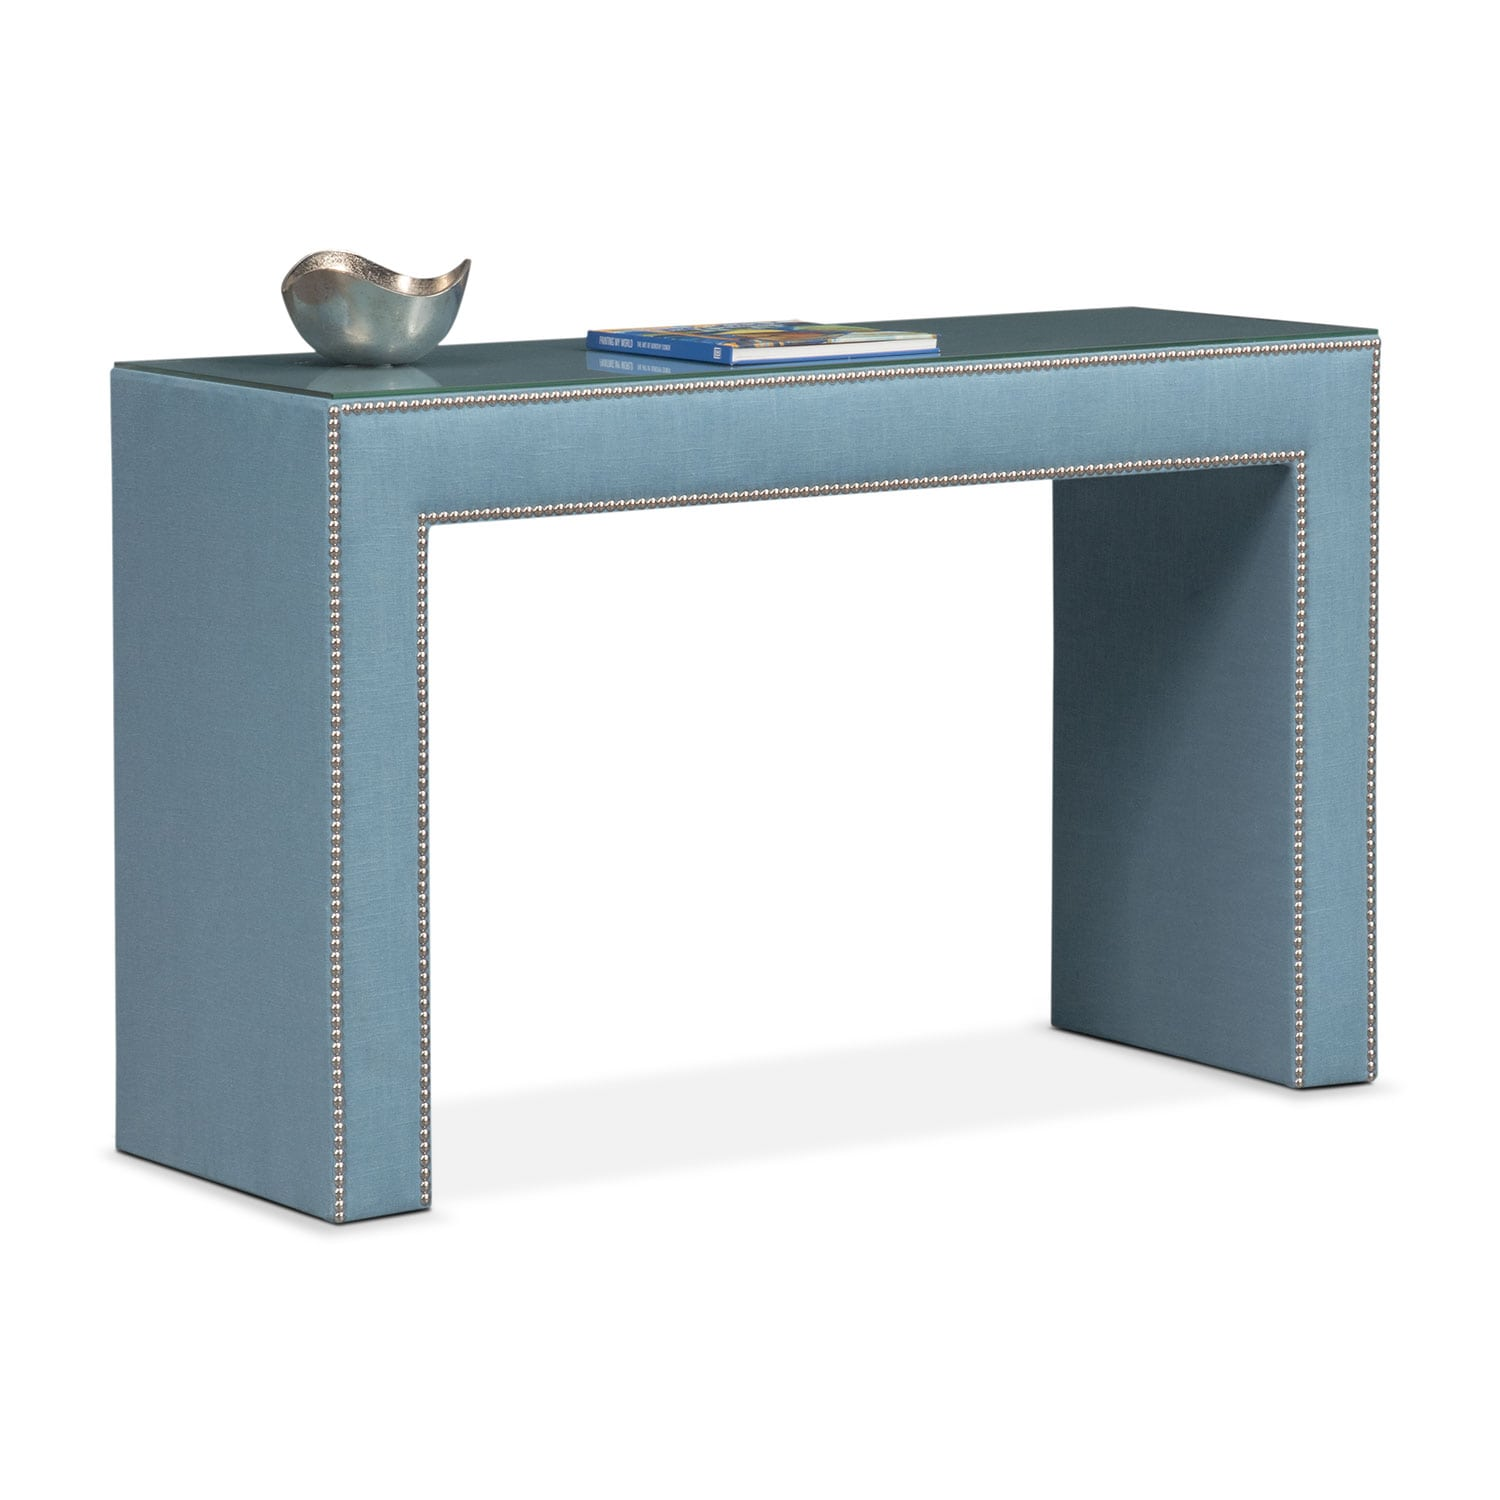 Bedroom Furniture - Nyla Vanity Desk - Teal